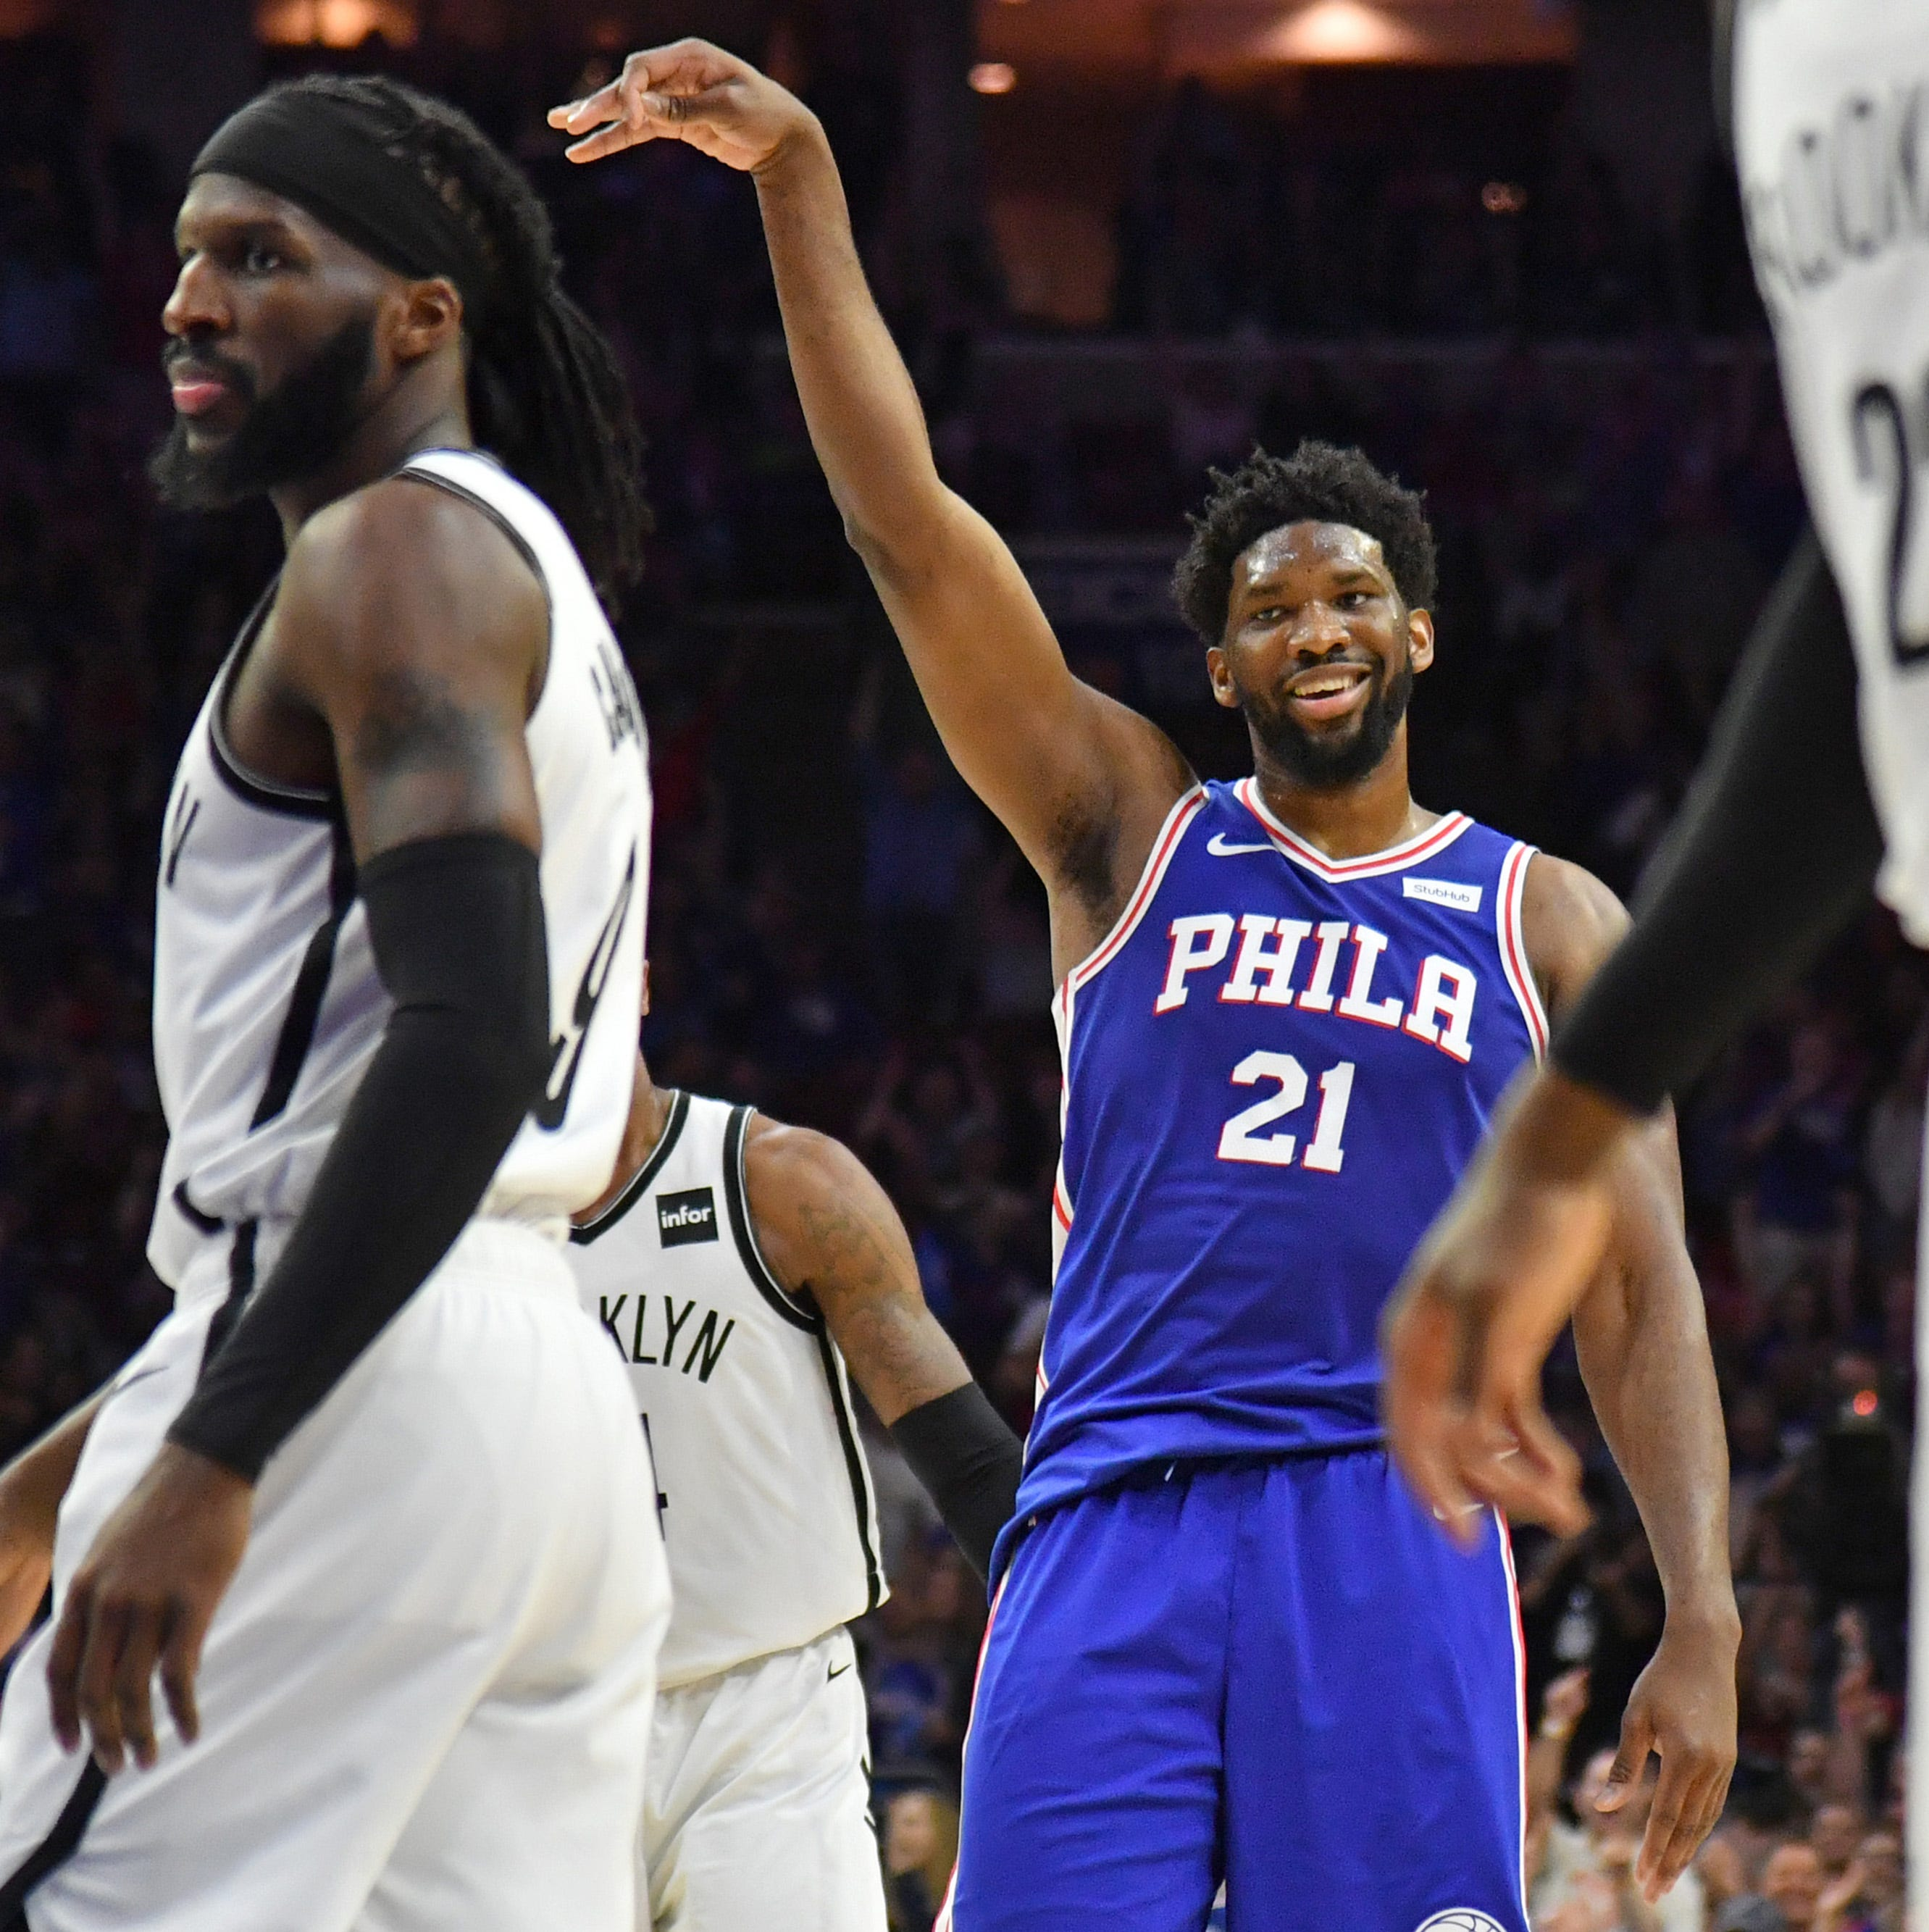 Joel Embiid, Sixers dominate Nets to close out series, advance to face Raptors